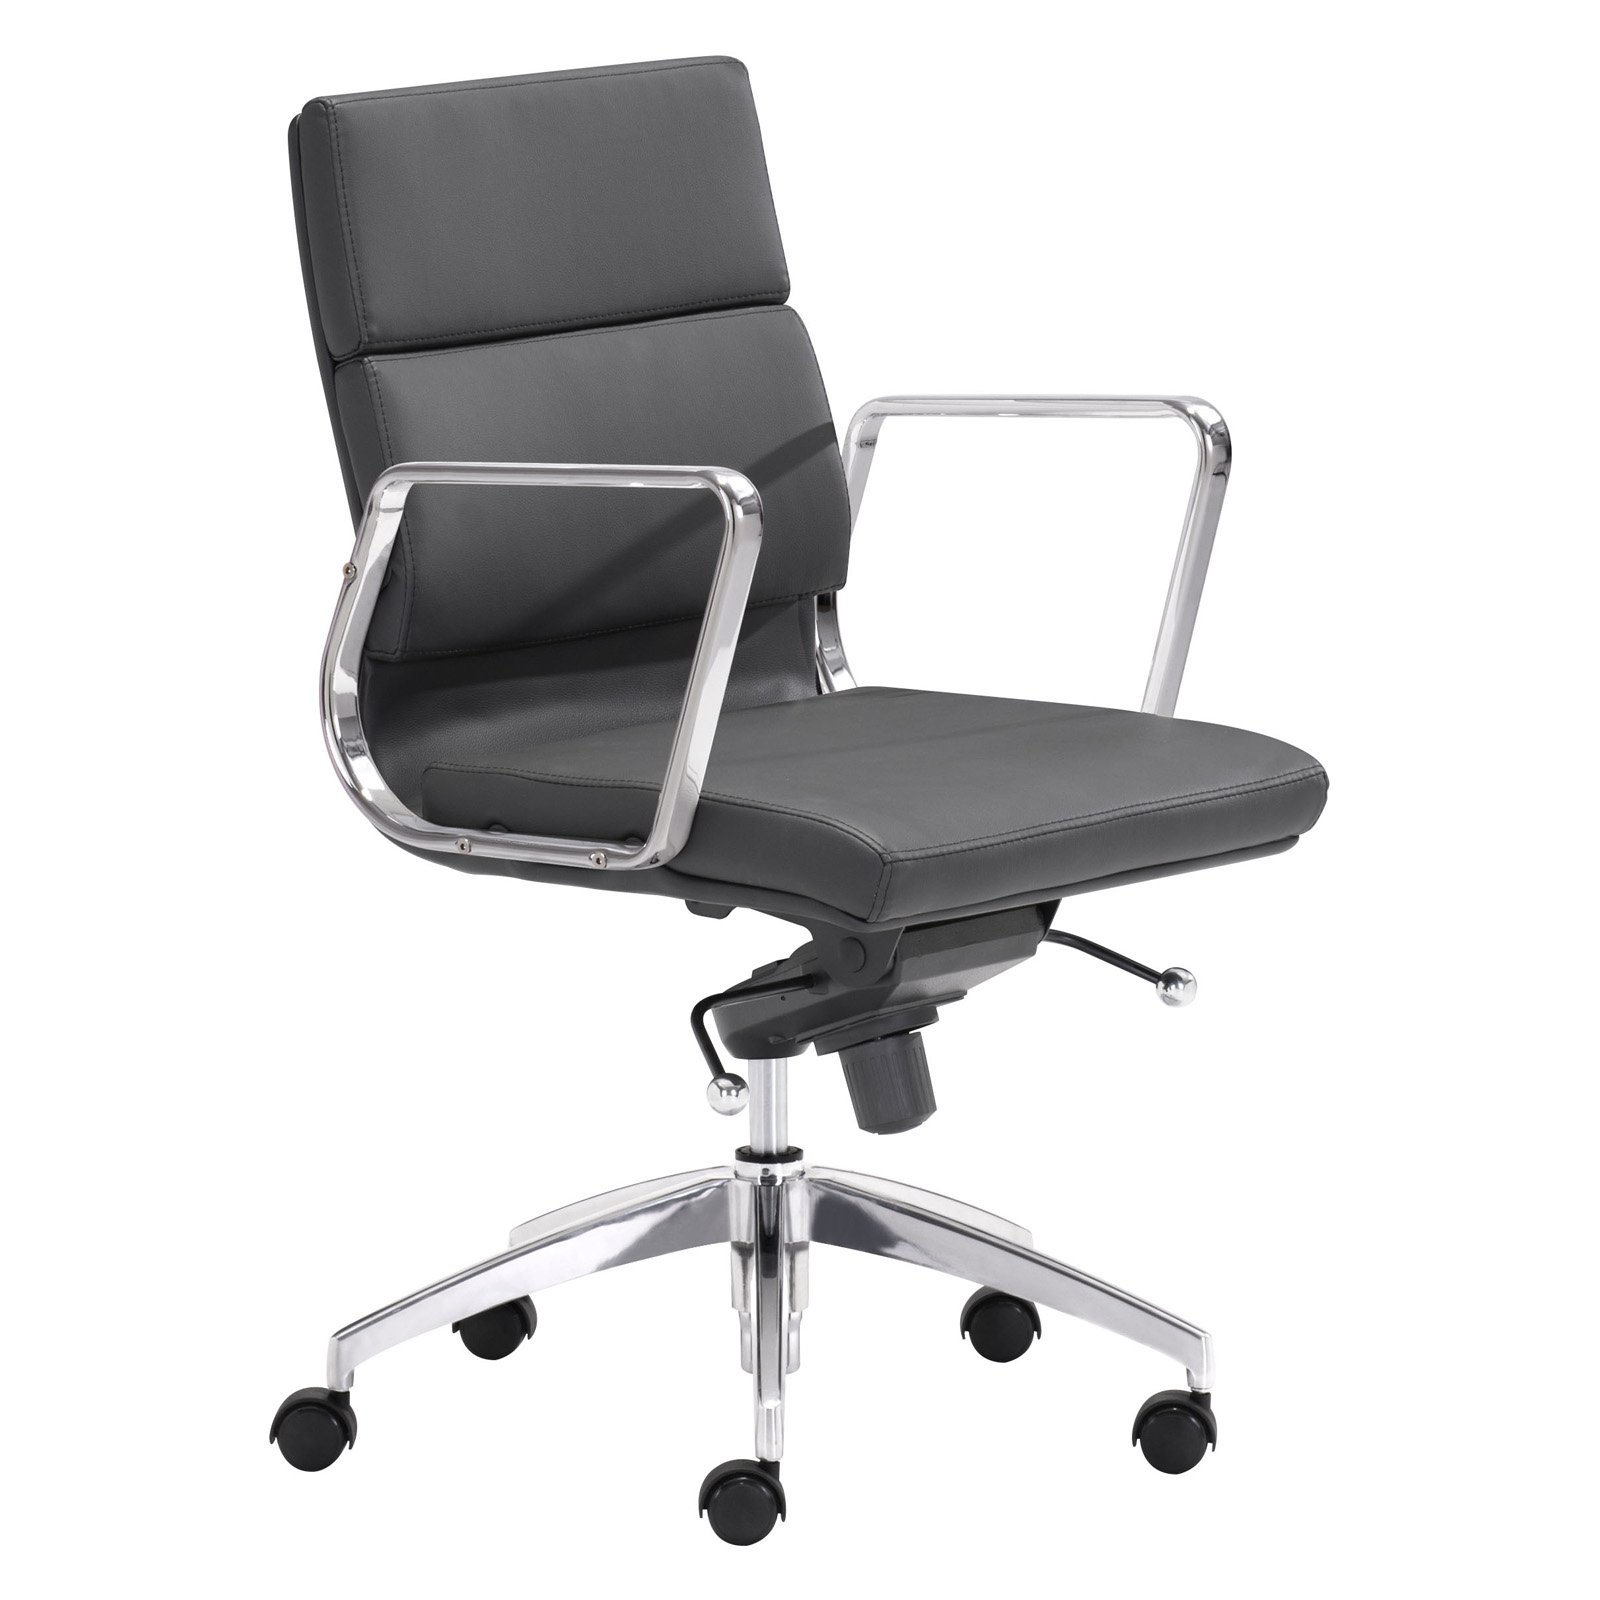 Low Back Office Chair Engineer Low Back Office Chair Multiple Colors